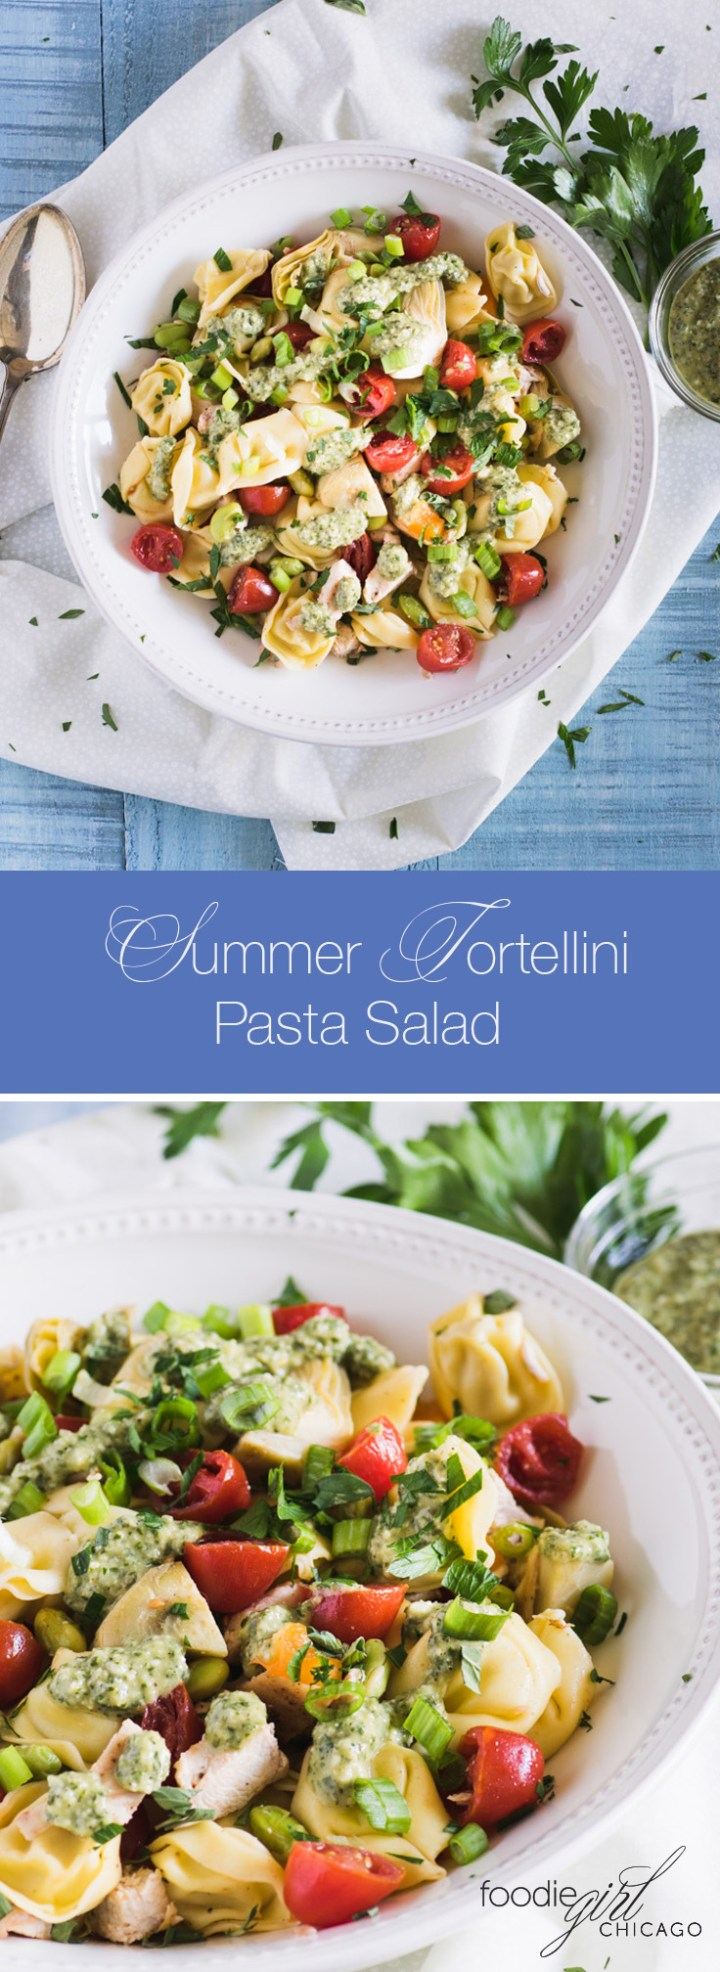 This lovely summer pasta salad is loaded with fresh veggies and topped with a tangy pesto dressing to give it an extra pop of flavor!